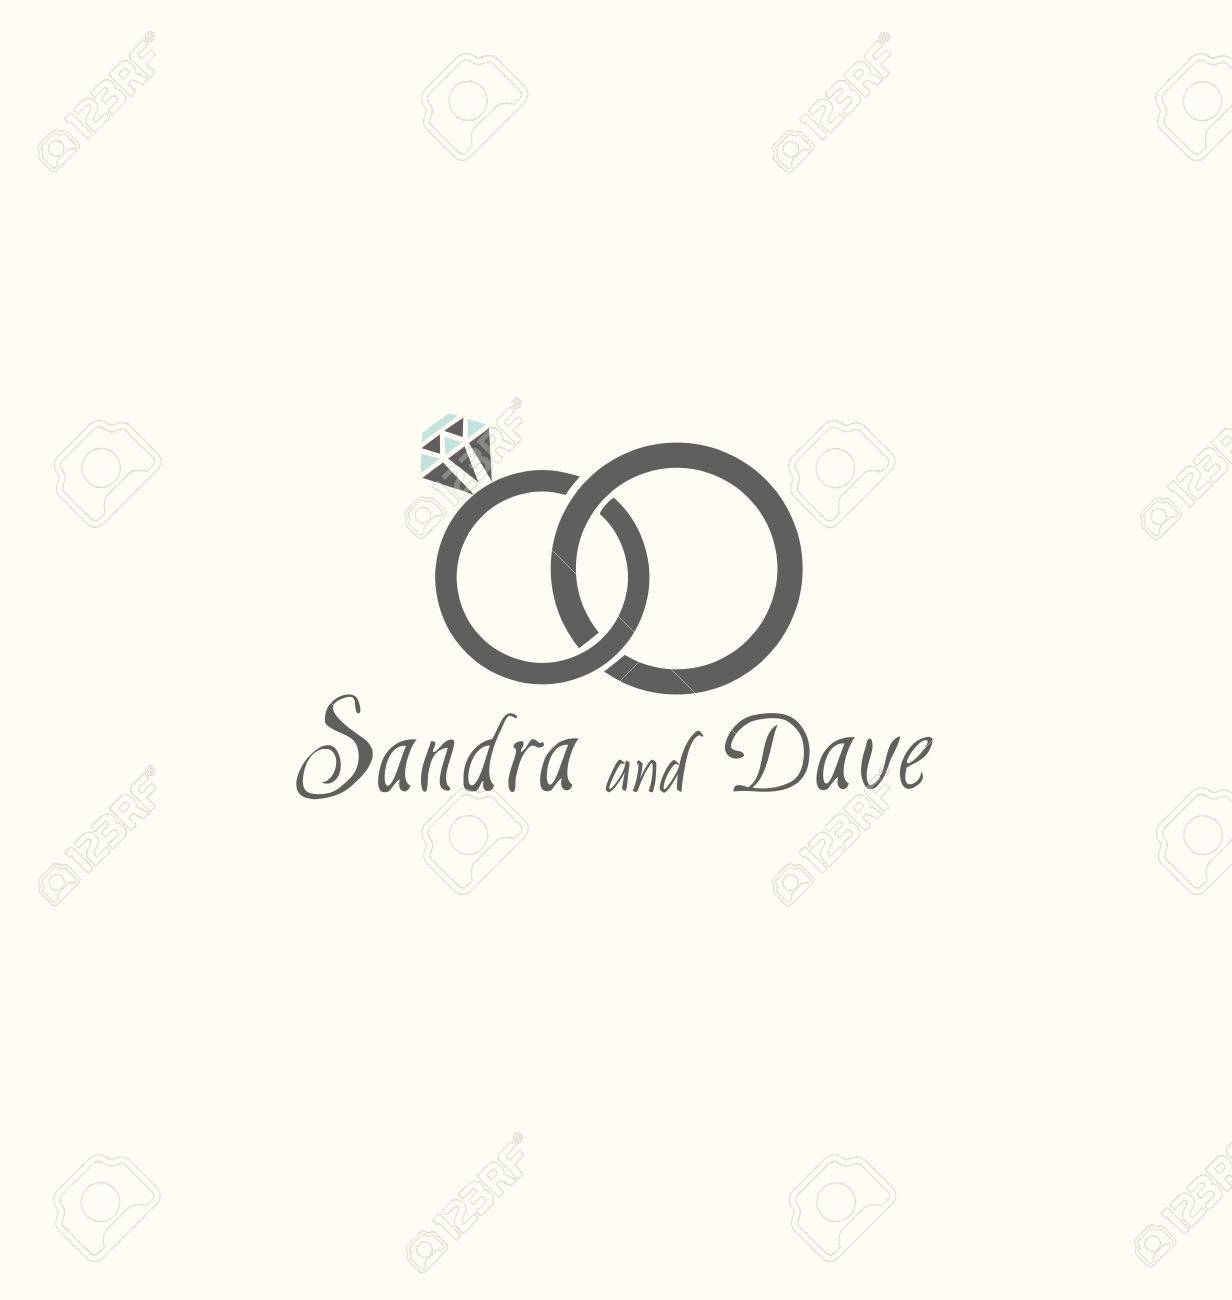 vector illustration of two wedding rings isolated on white background - 50092931